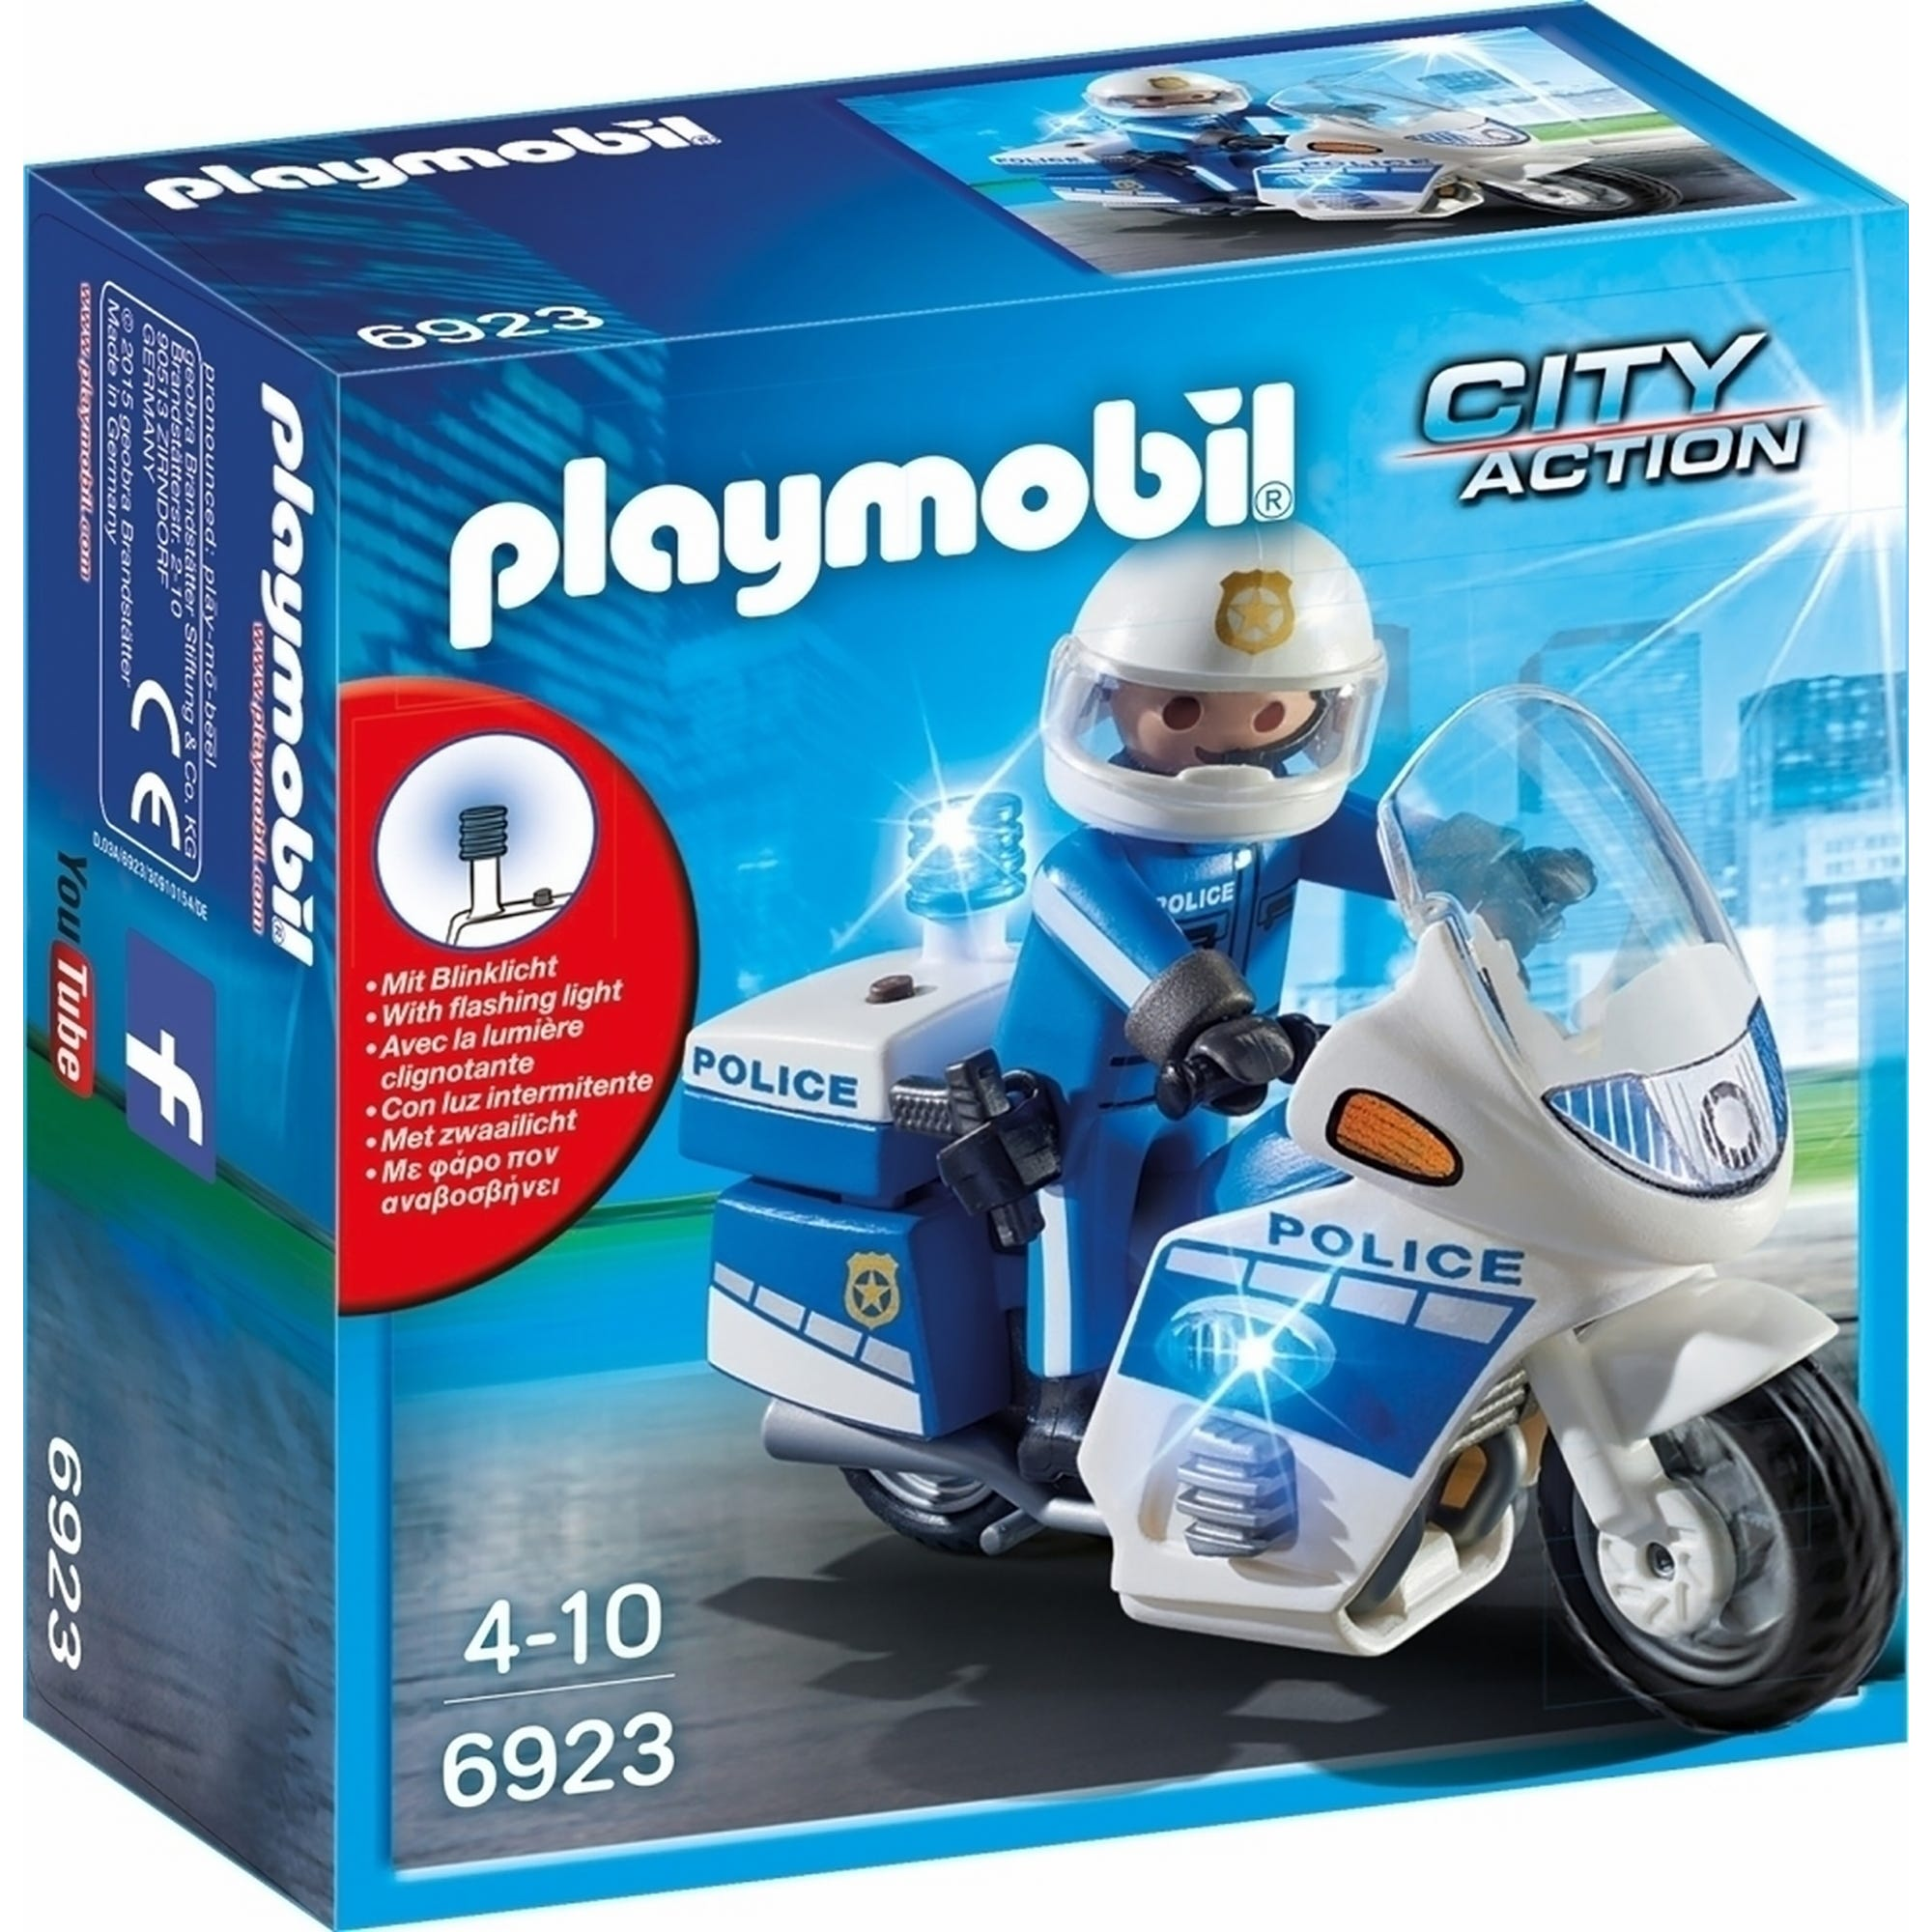 Playmobil City Action Police Bike With LED Light 6923